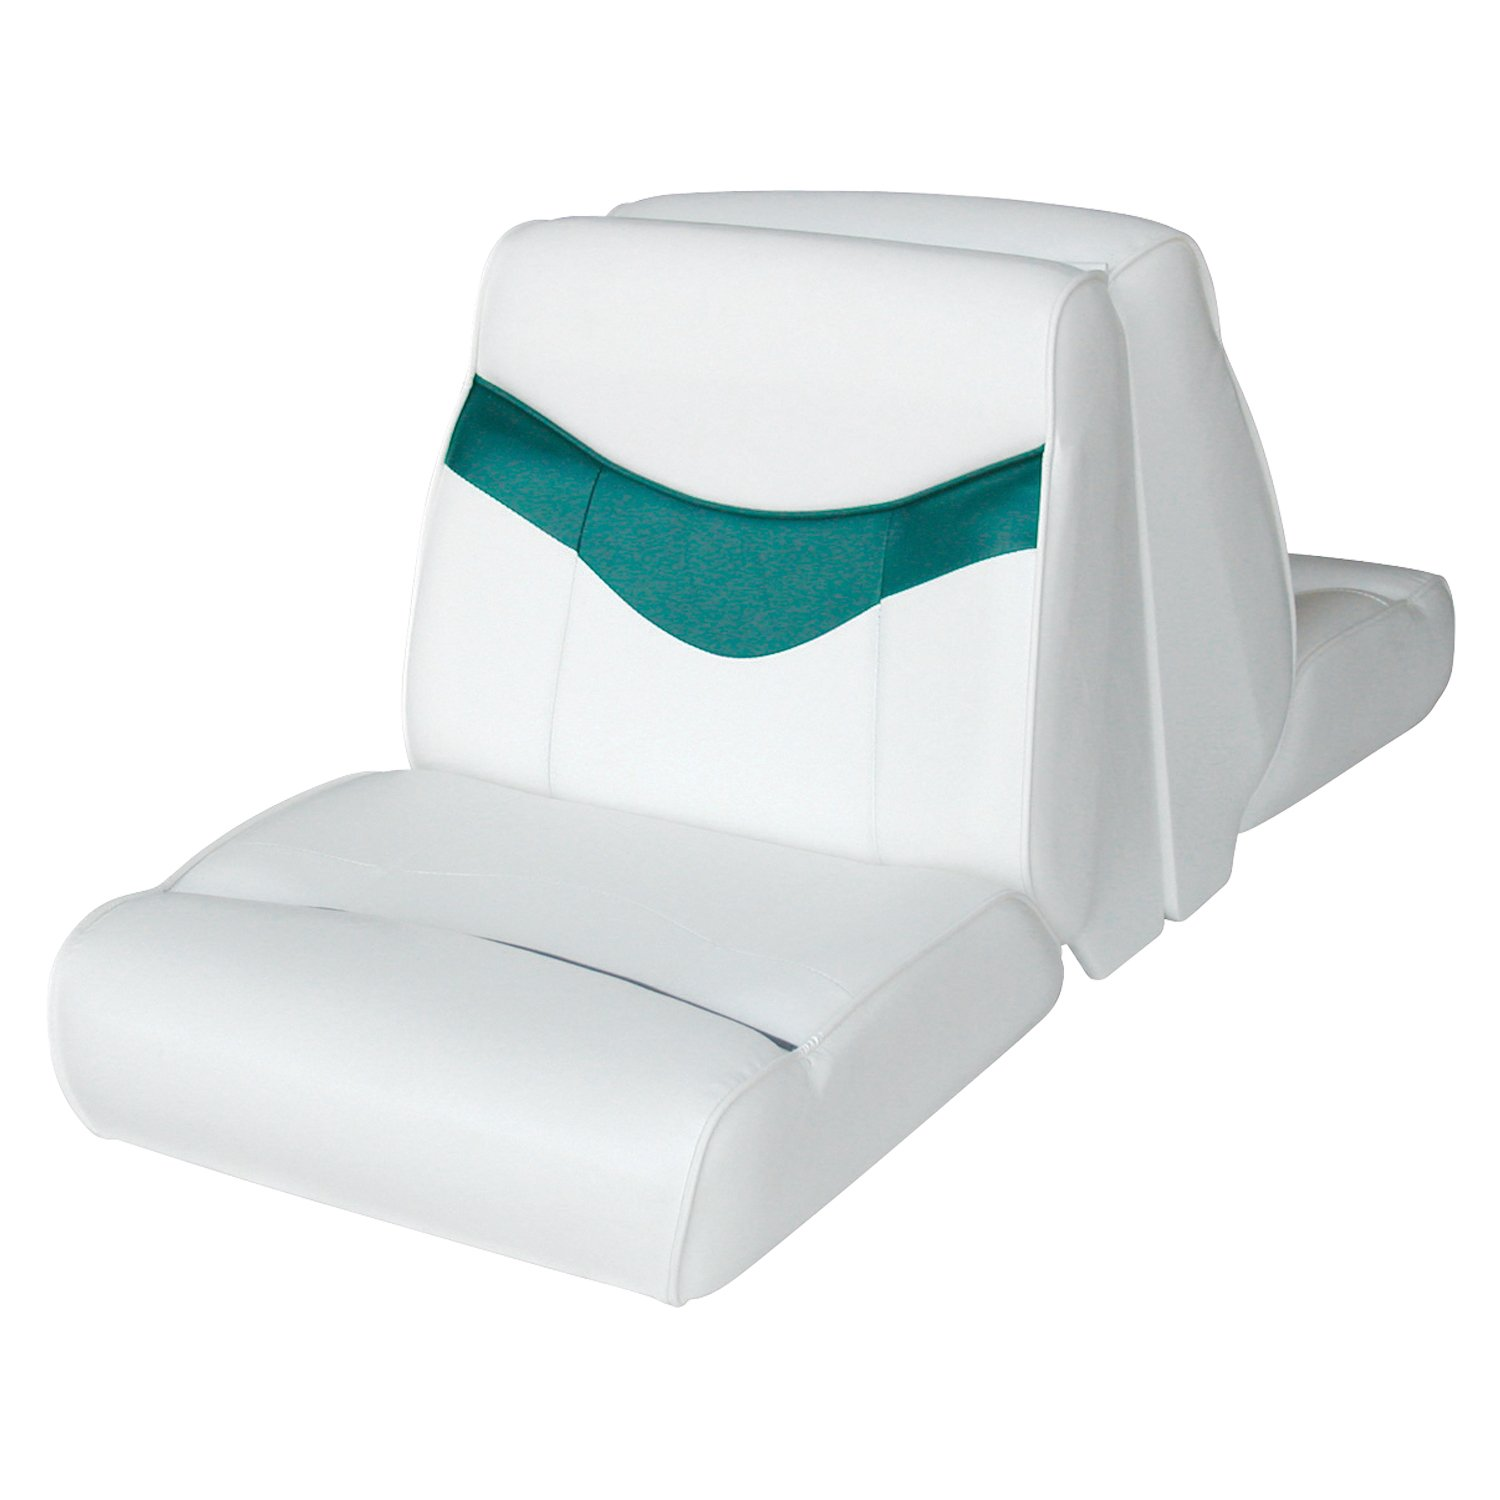 Wise Bayliner Capri Classic Lounge Seat Bright White 1987 Bowrider Wiring Diagram Hot Teal Sports Outdoors